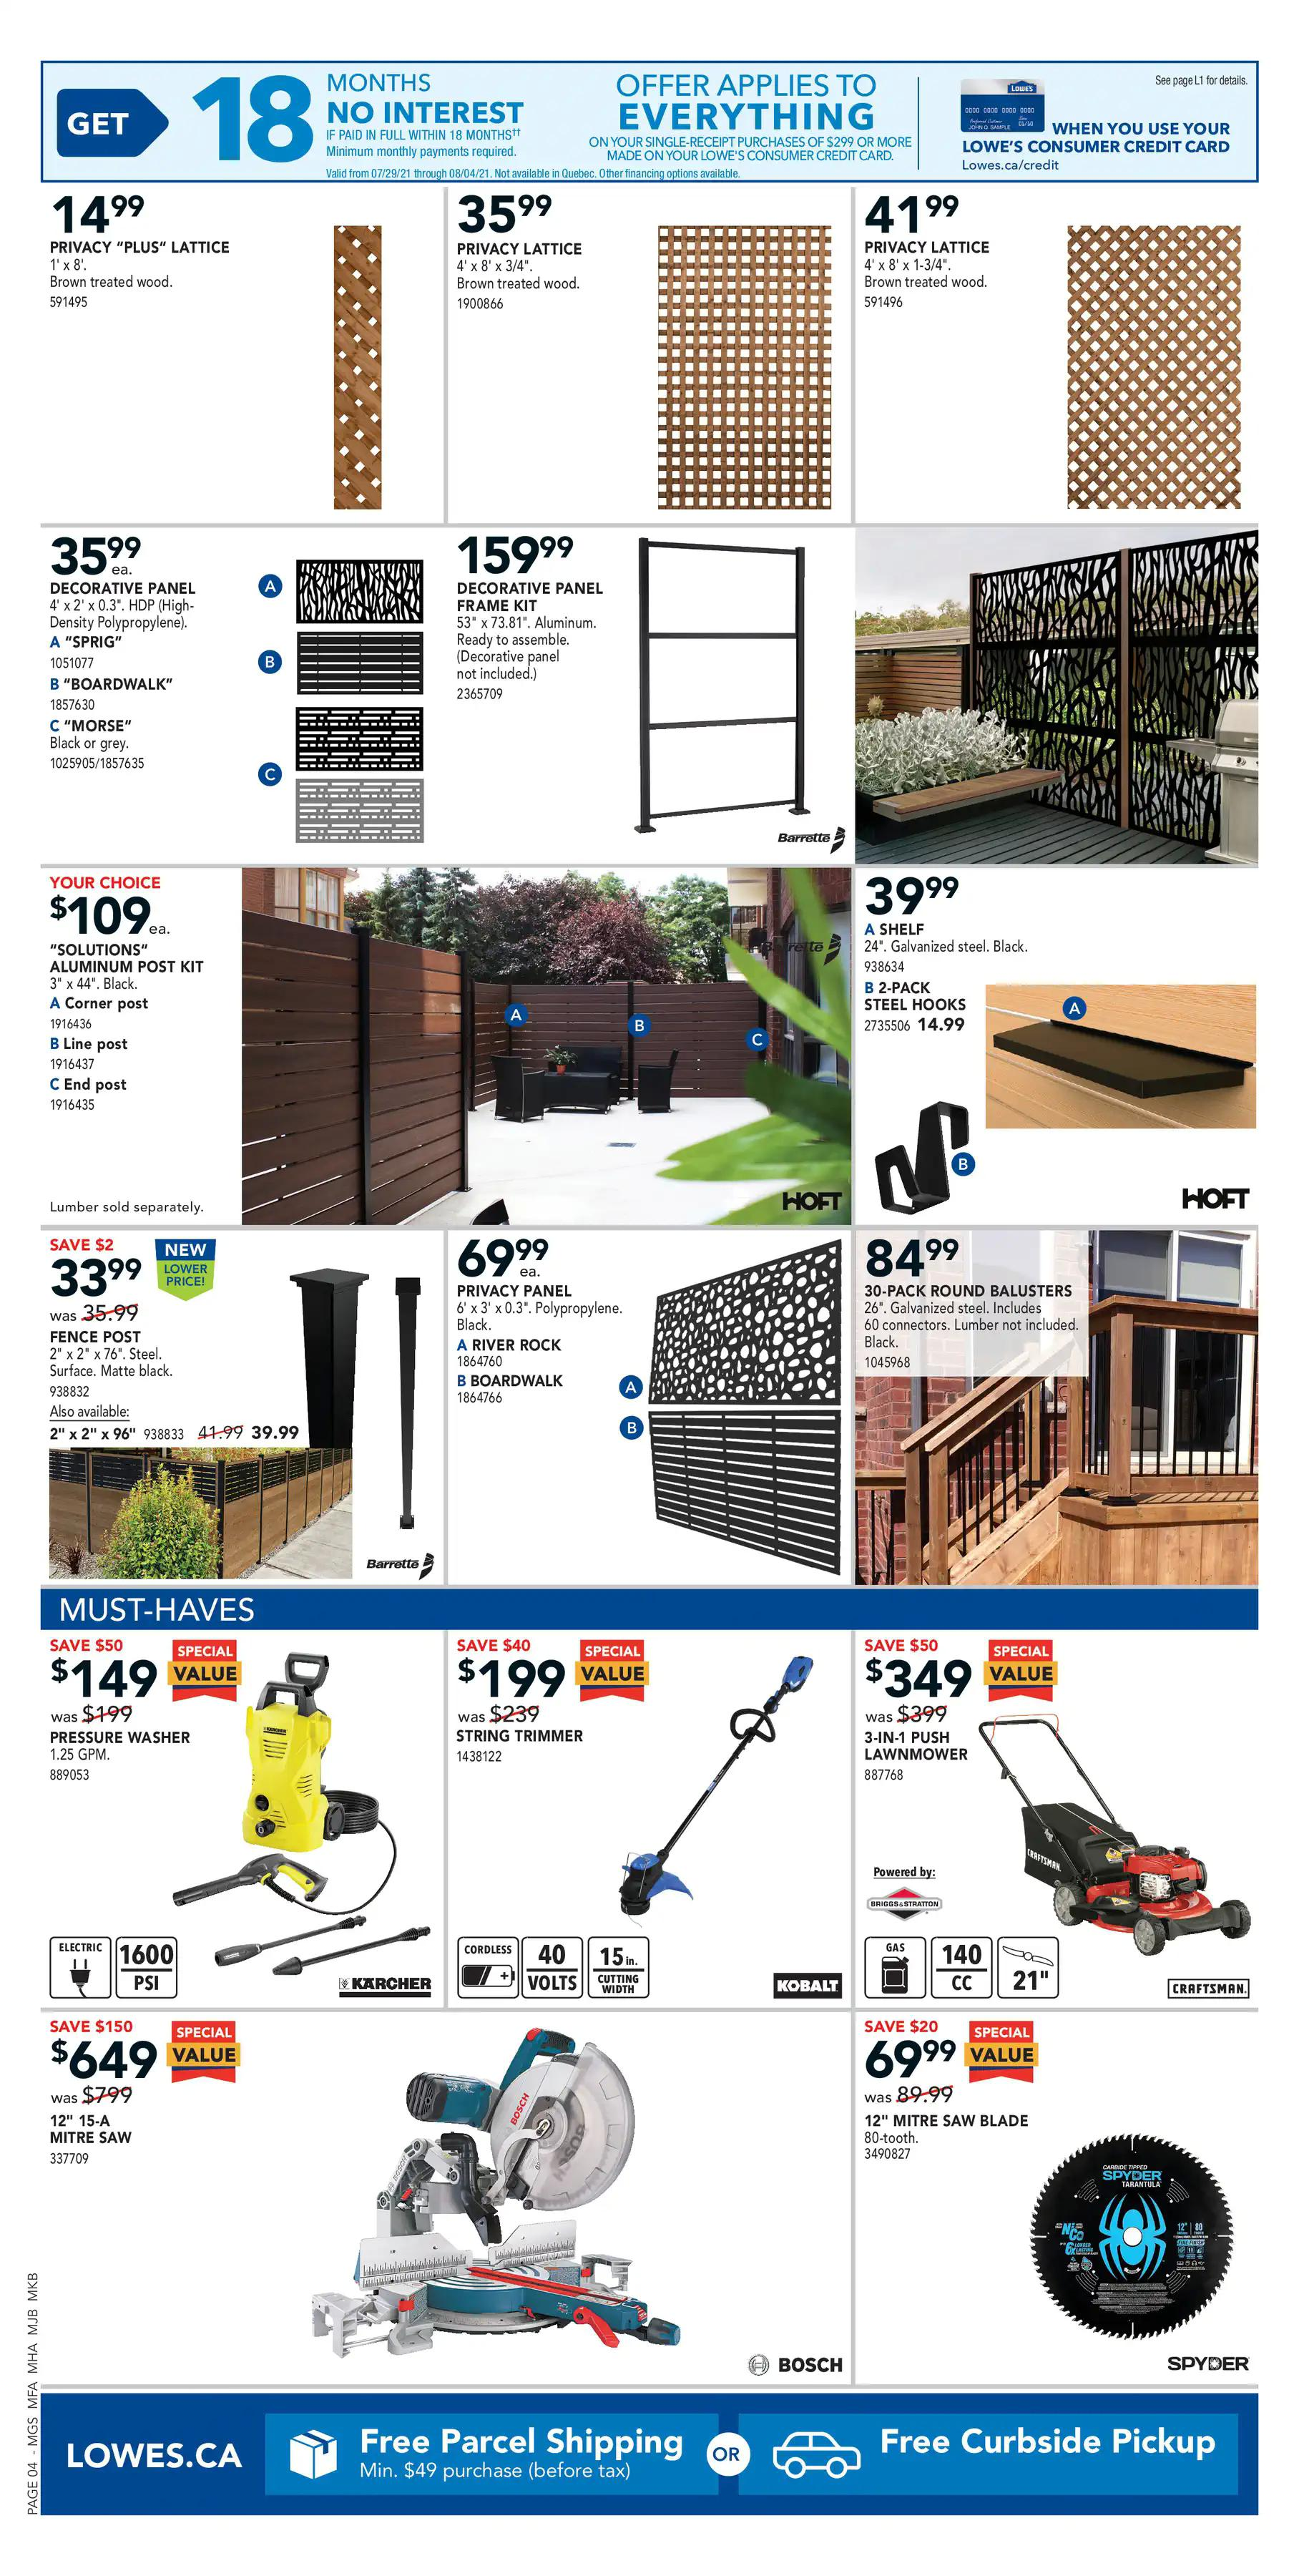 LOWE'S - Weekly Flyer Specials - Page 5